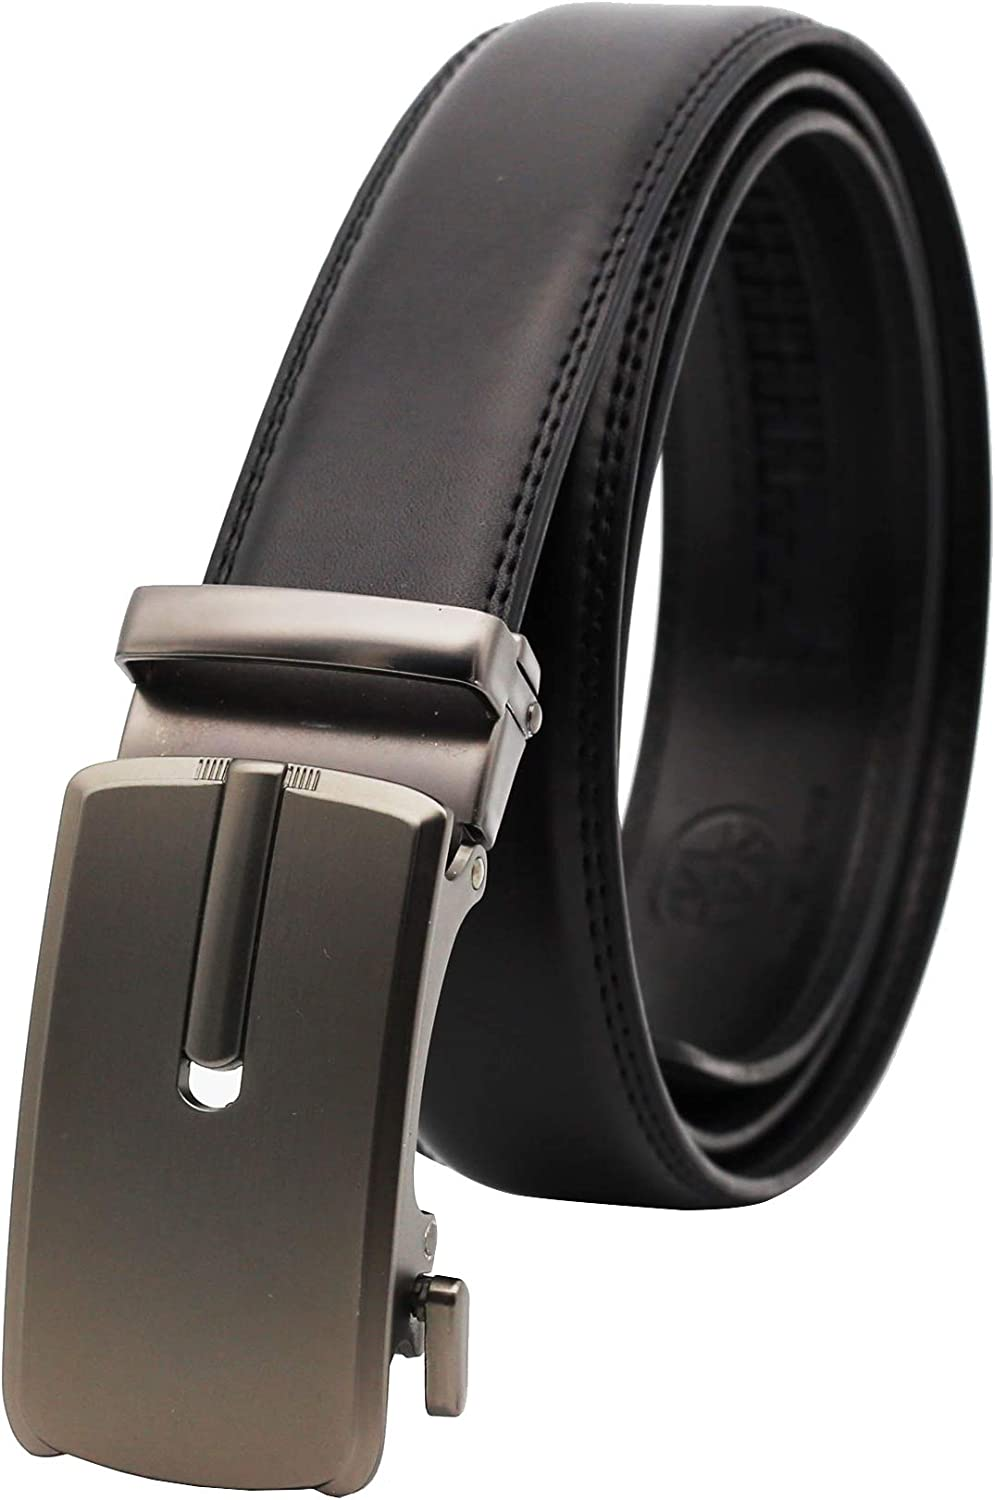 SENWA Men's 2021 new Genuine Leather Ratchet Regular store Automatic Belt Buckle with